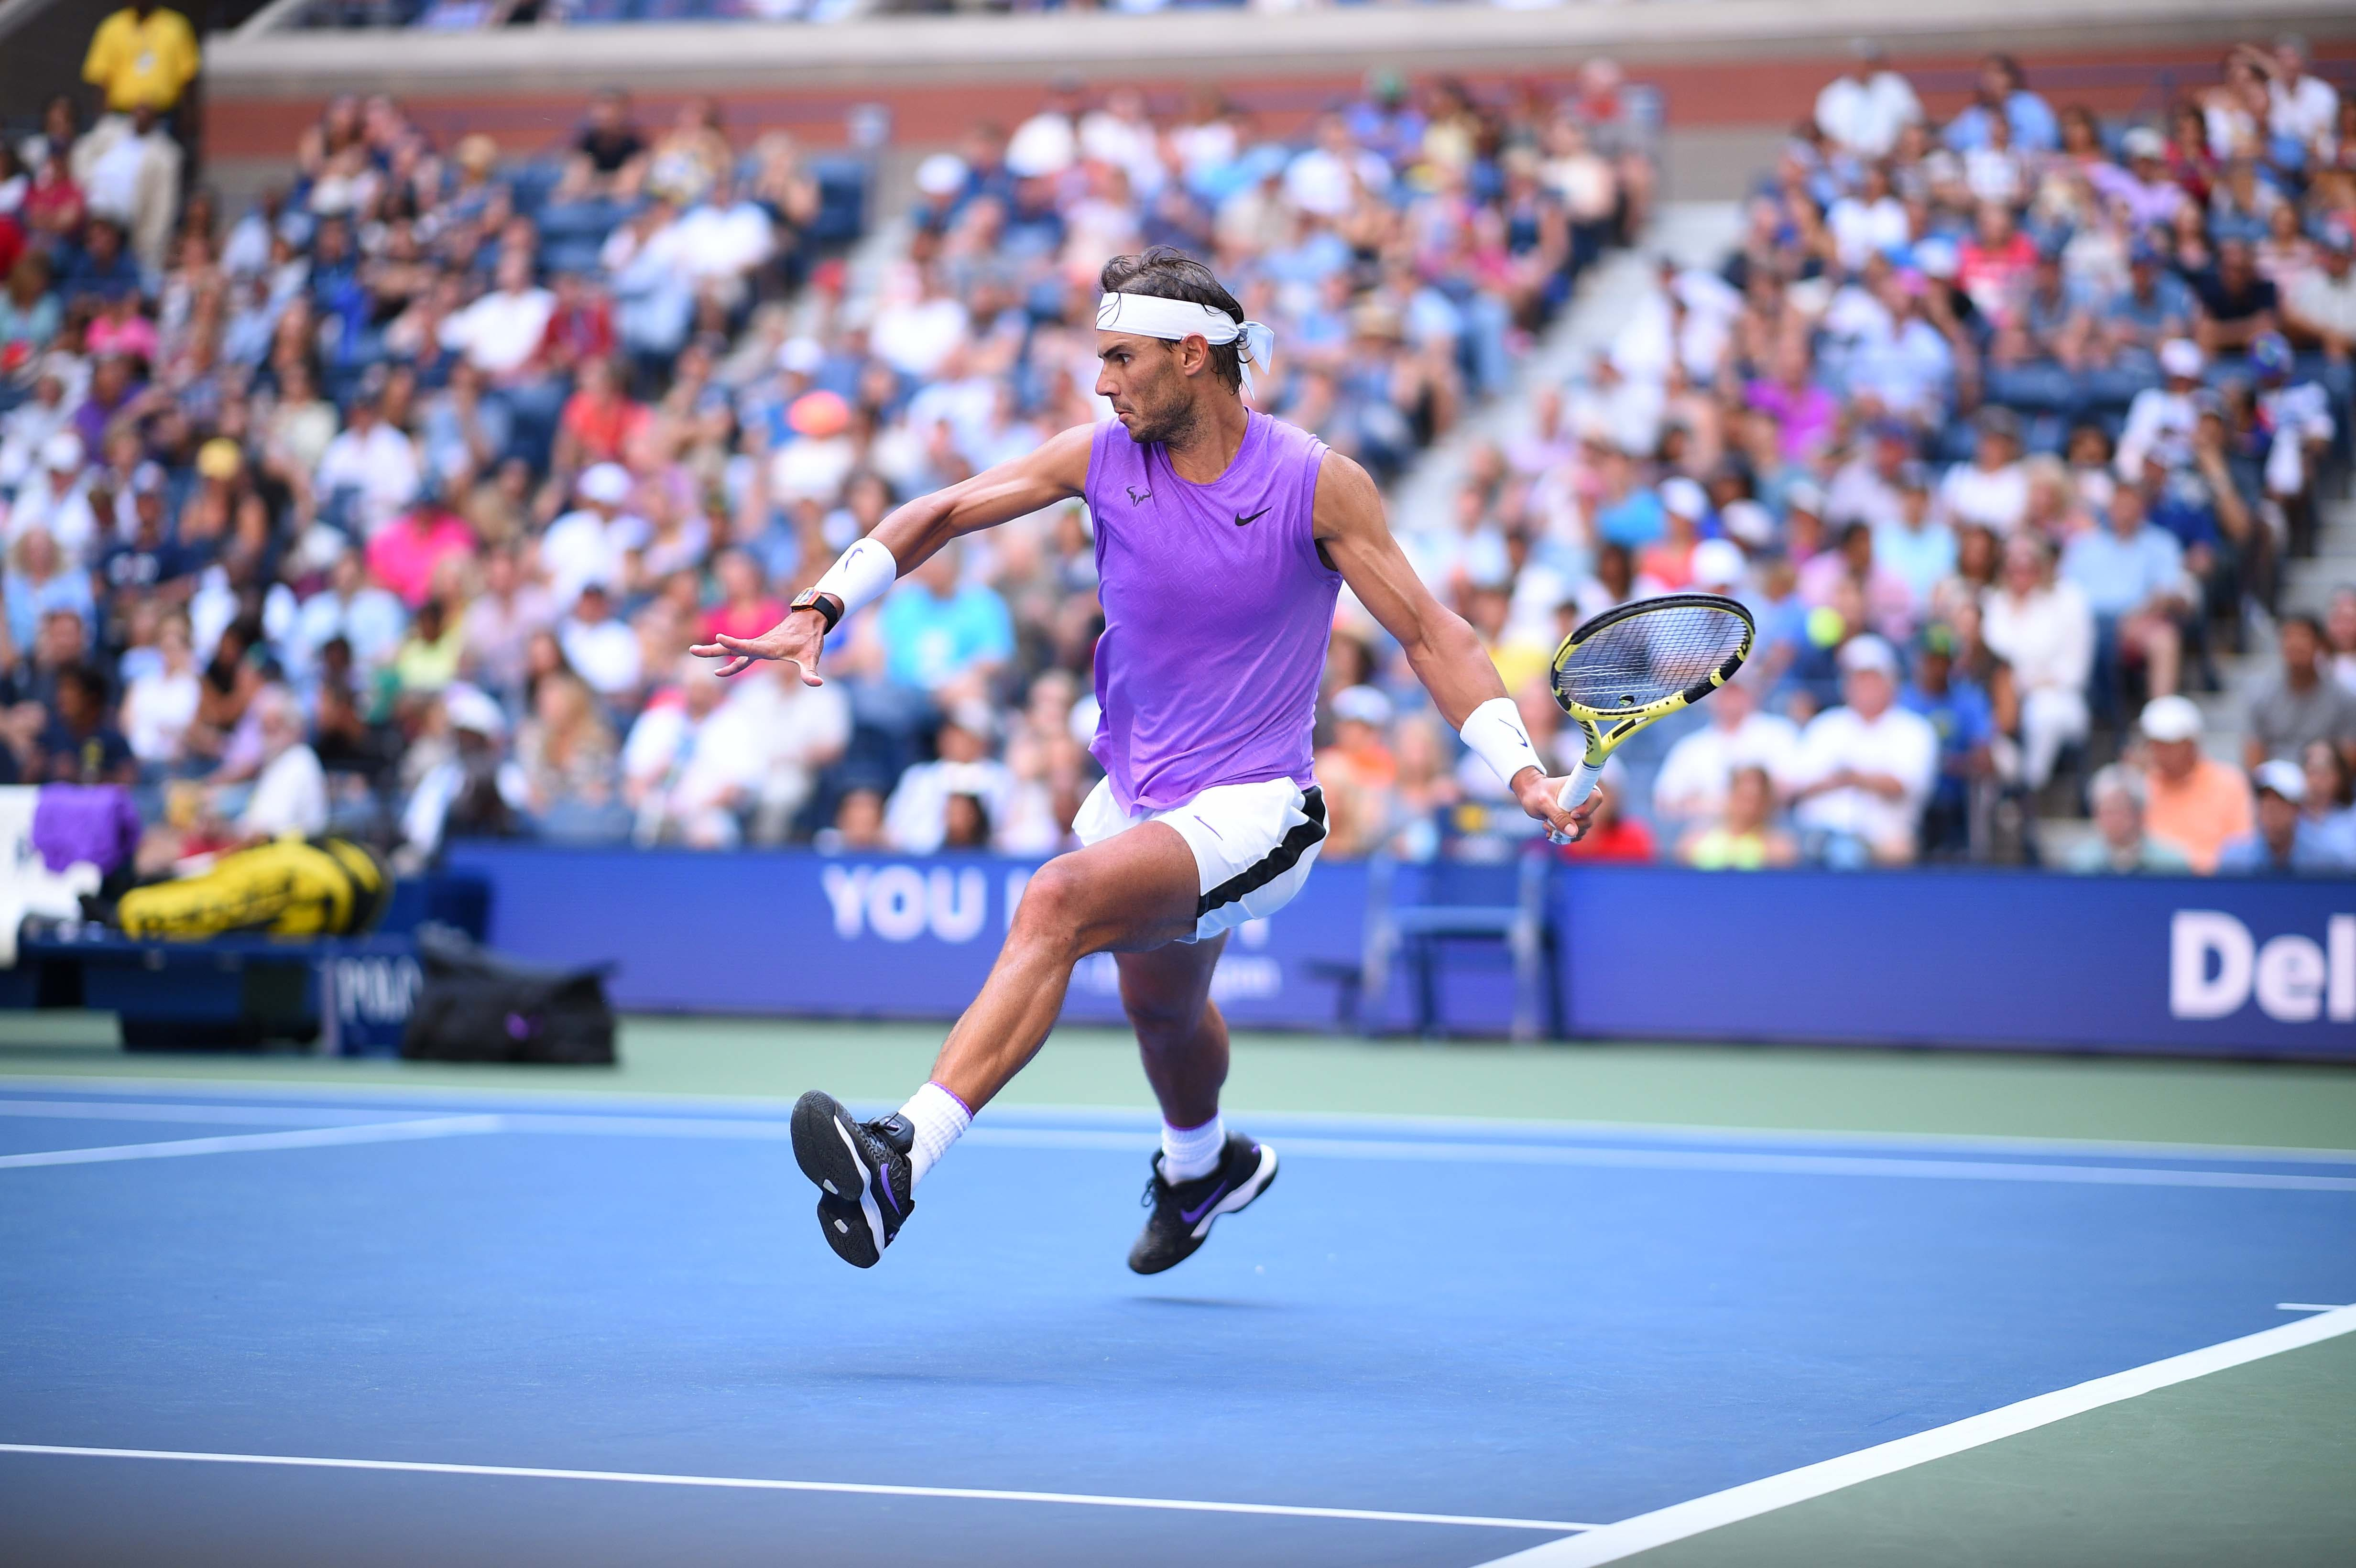 Rafael Nadal preparing a forehand during his third round match at the 2019 US Open